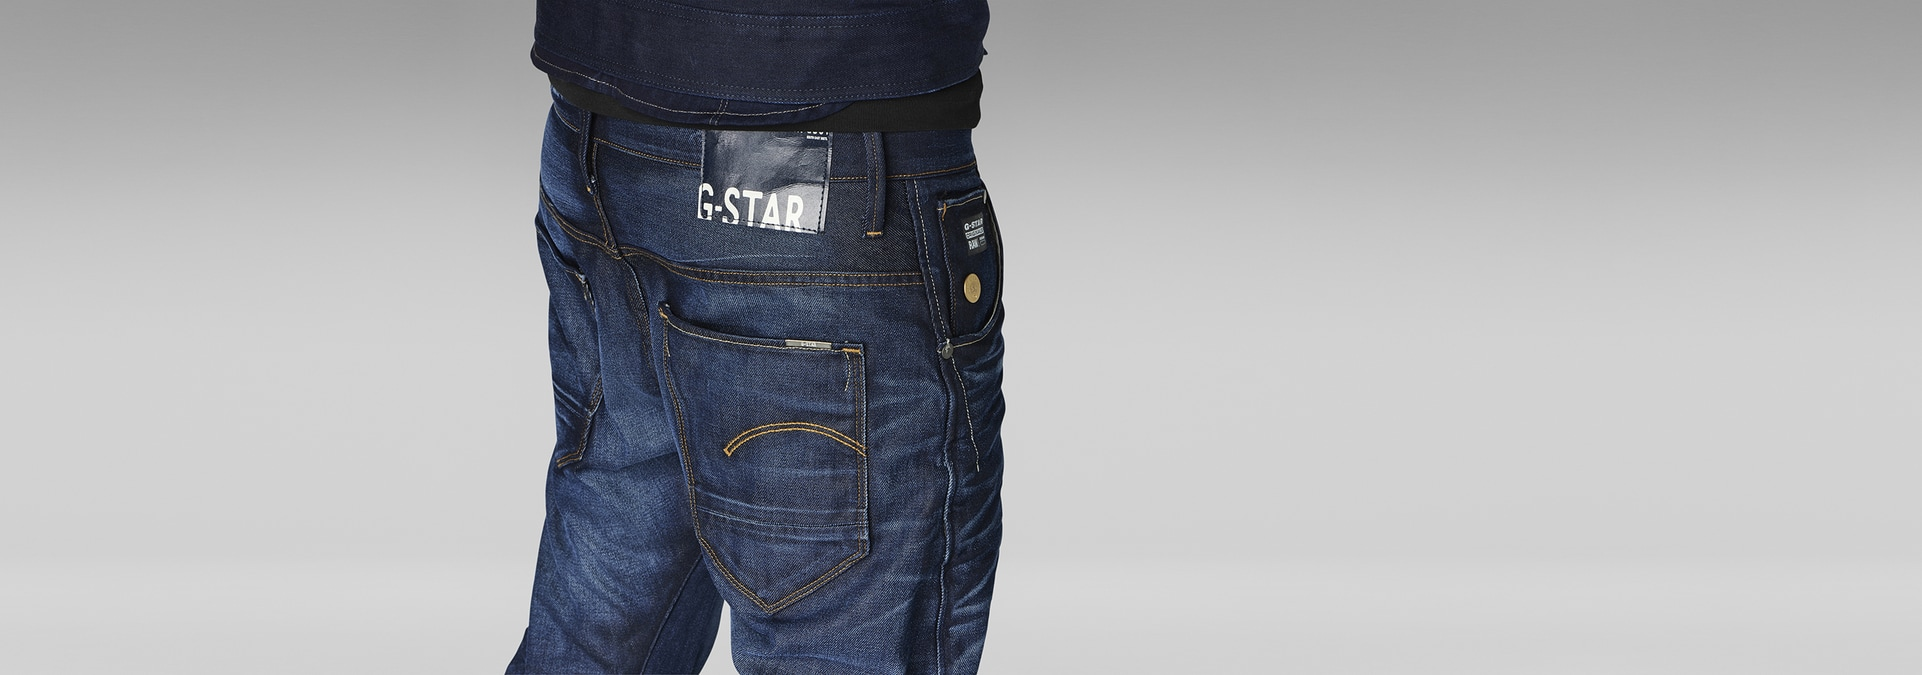 star raw men jeans 3301 low tapered medium aged. Black Bedroom Furniture Sets. Home Design Ideas